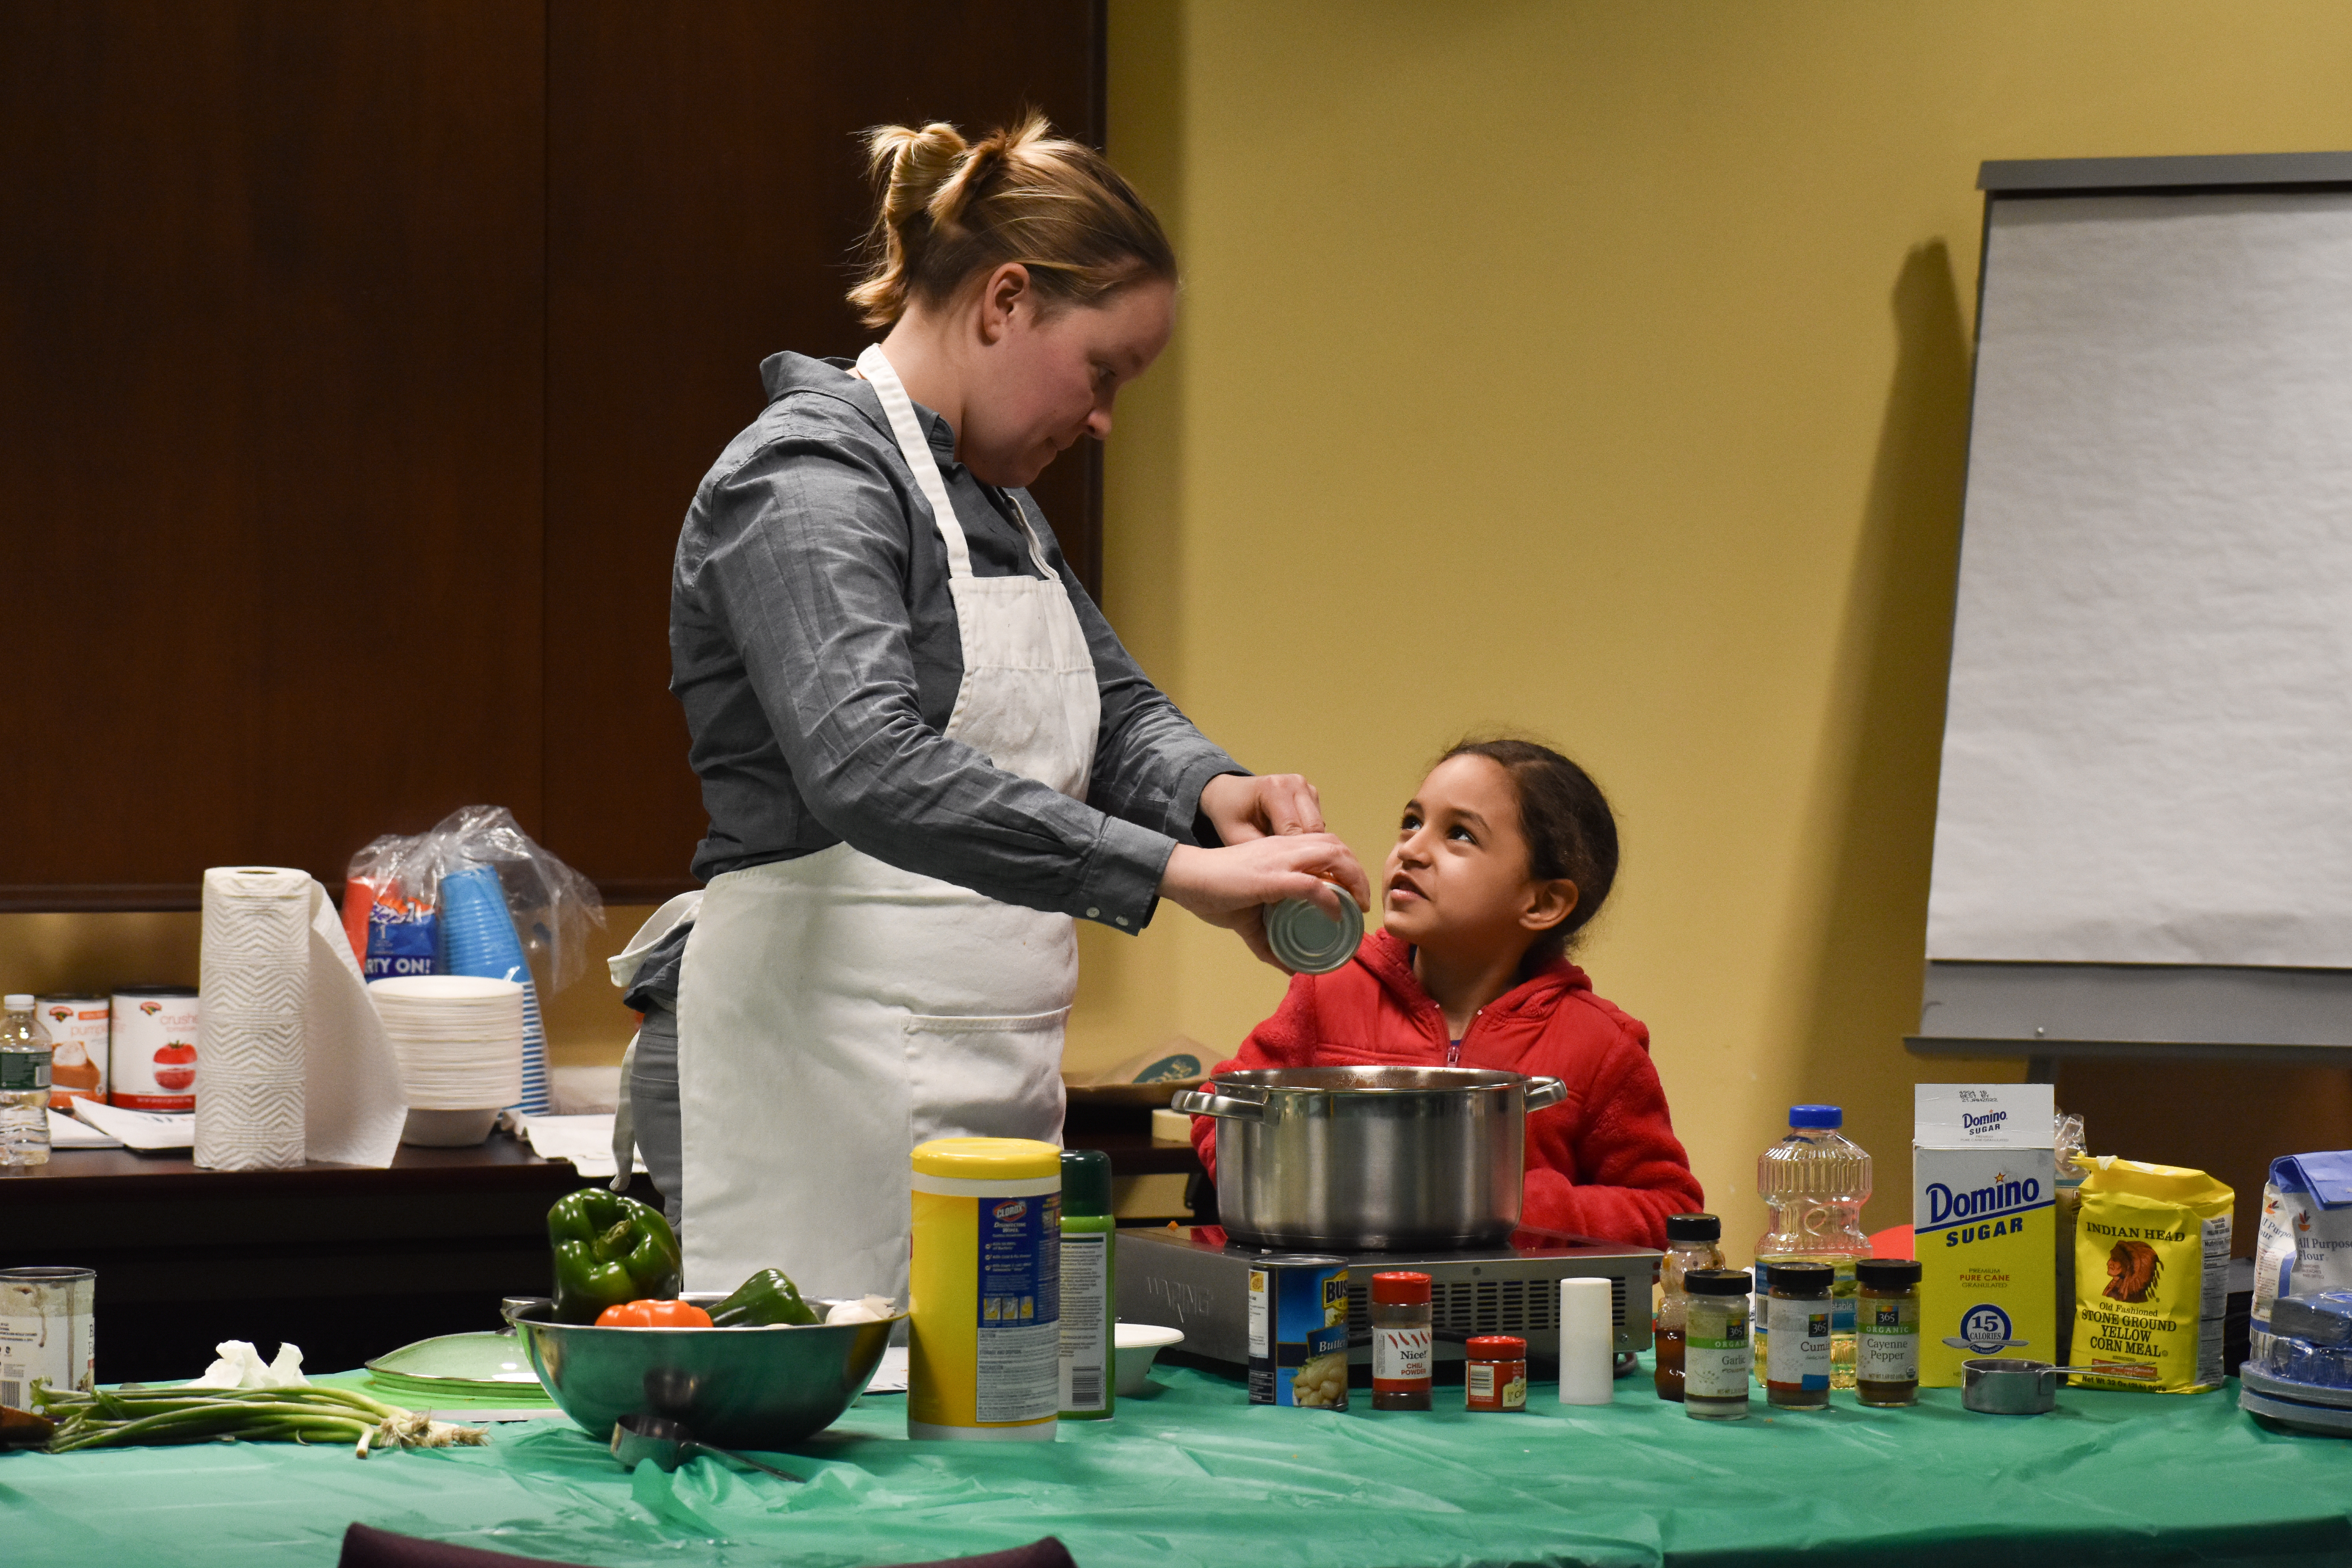 Cooking Lessons Bring Food and Smiles to DDP Clients